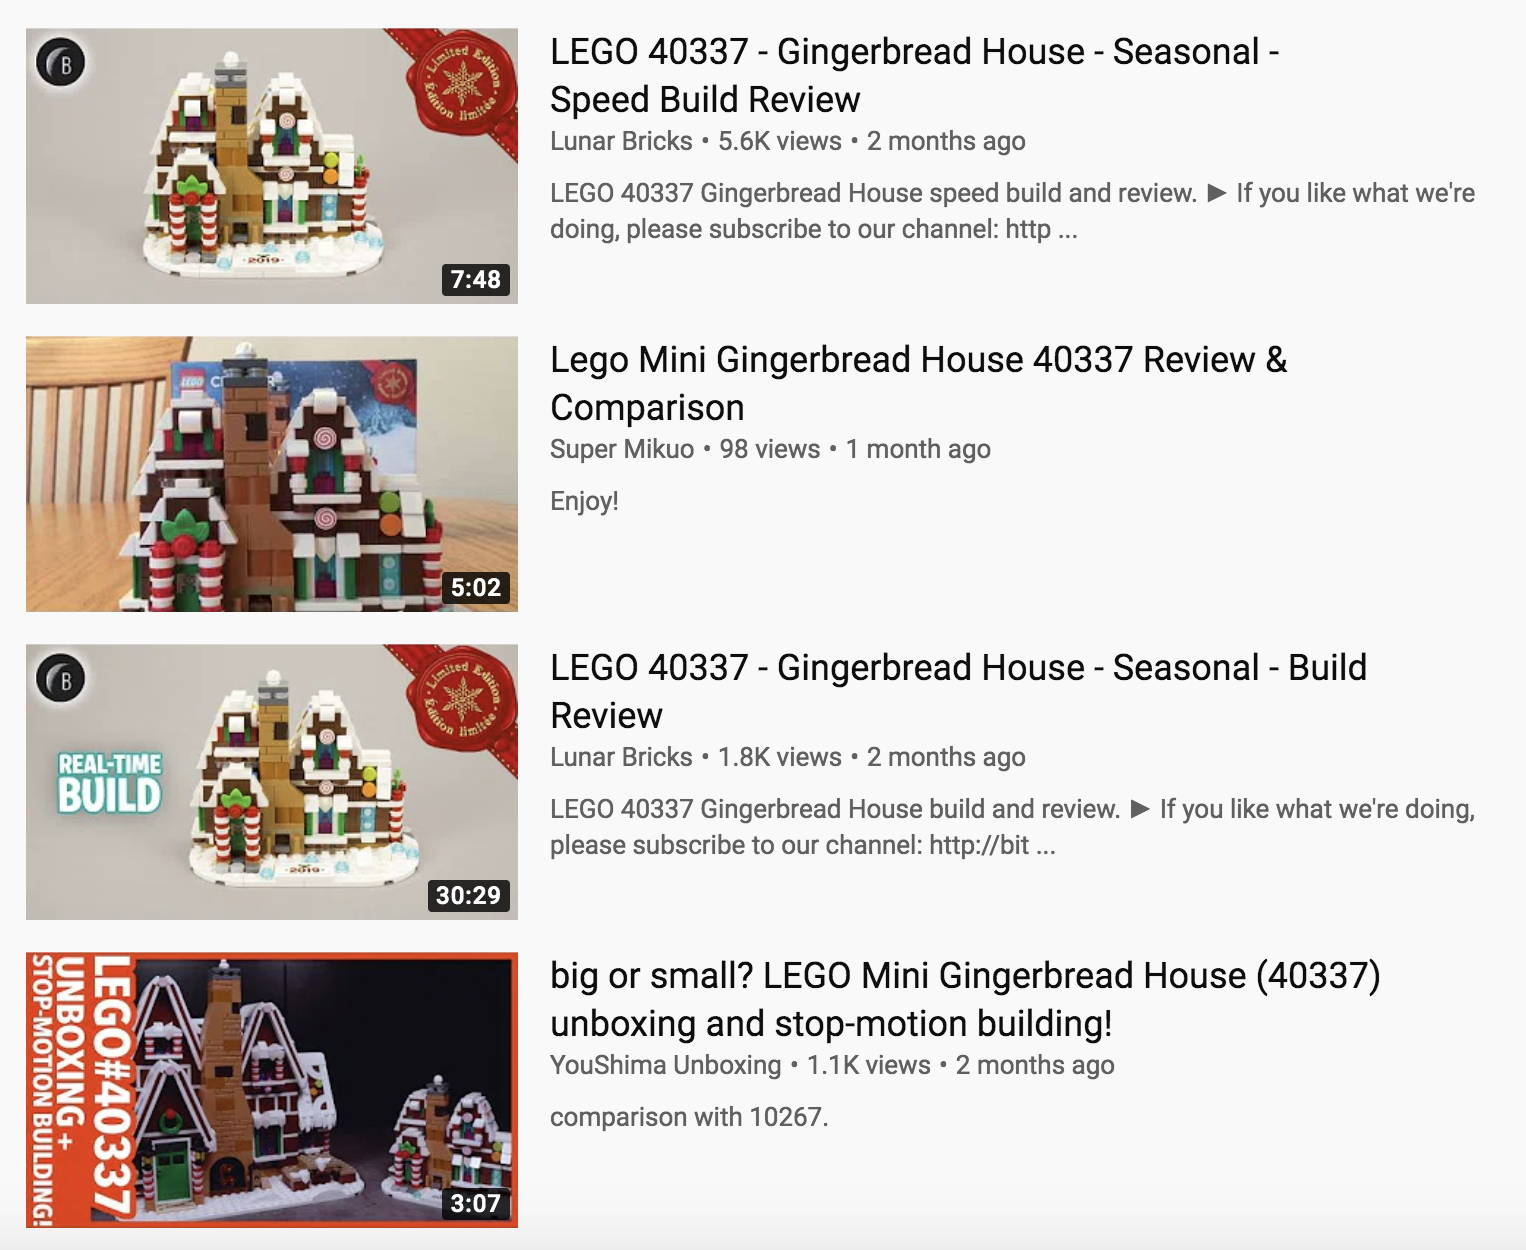 lego 40337 youtube search